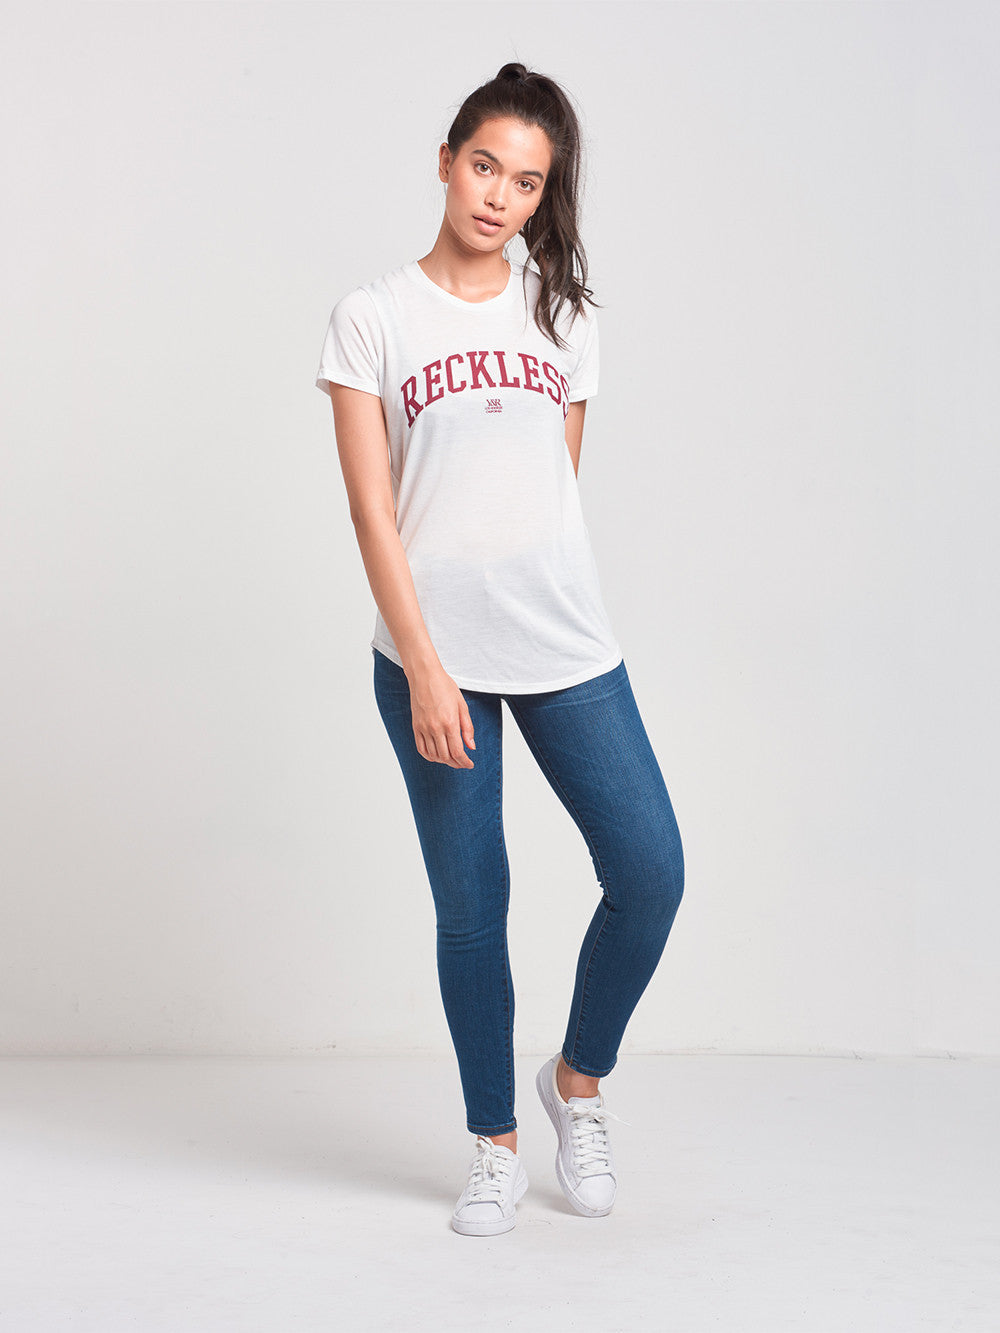 Reckless Girls Womens - Tops - Tees Rep City Long Scoop Tee- White